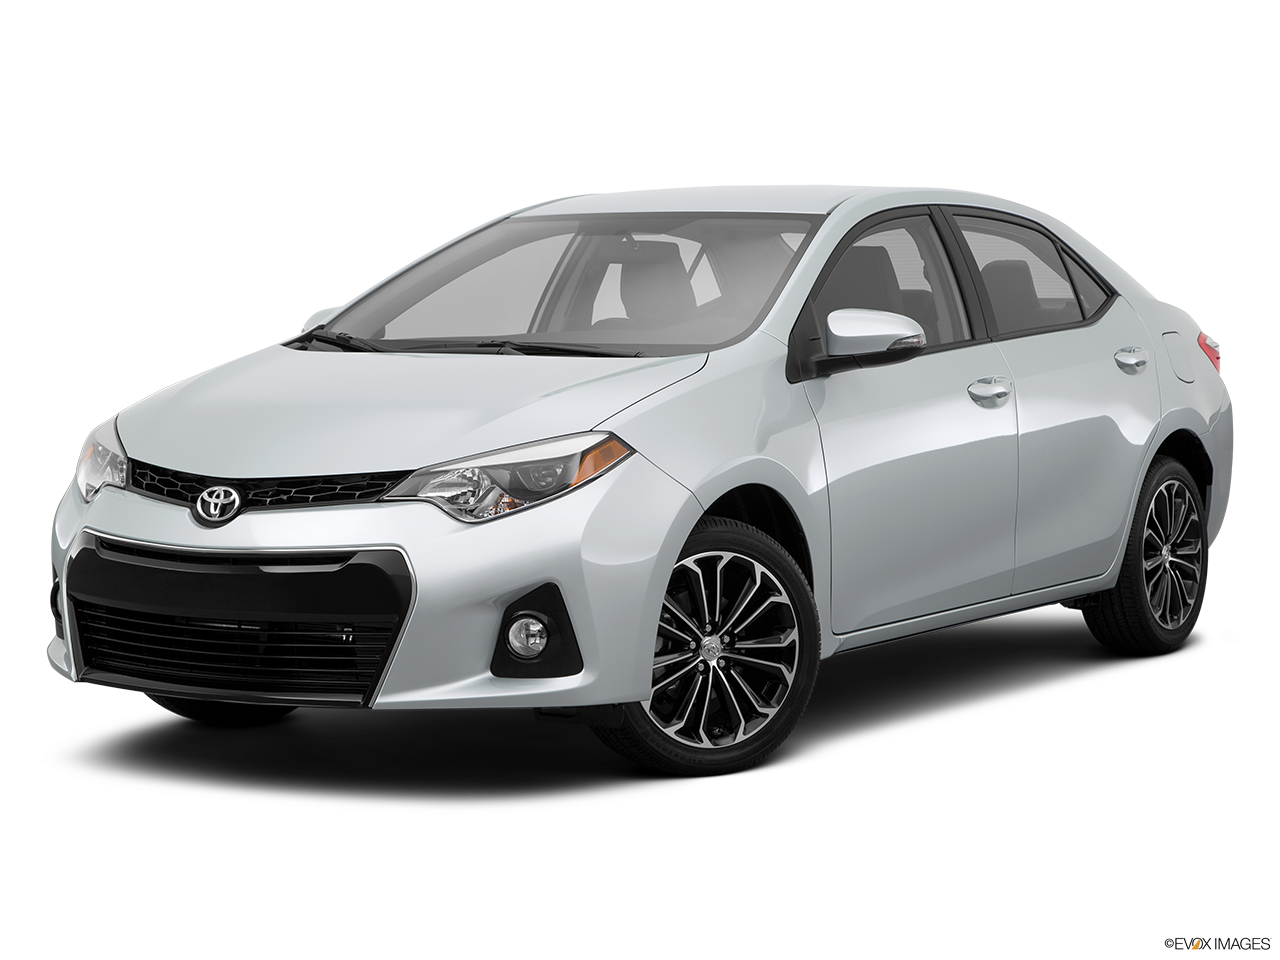 2015 toyota corolla information and photos zombiedrive. Black Bedroom Furniture Sets. Home Design Ideas